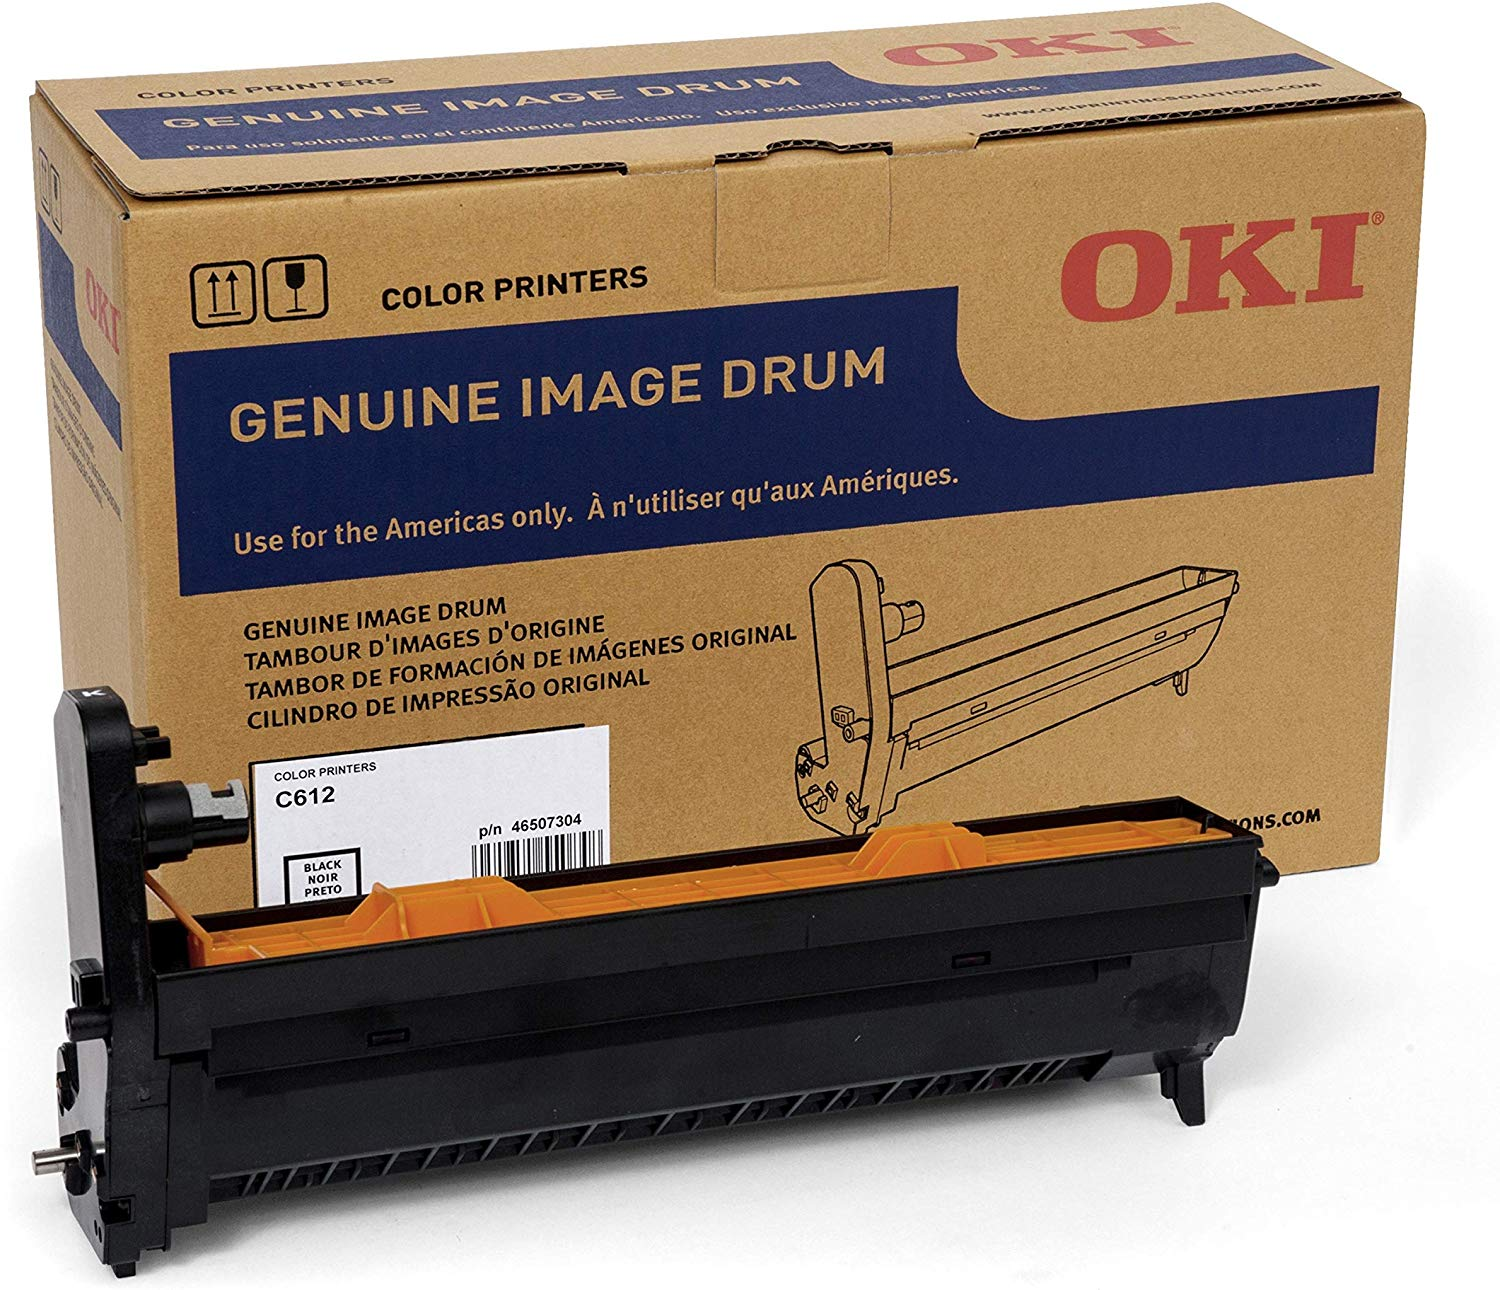 Okidata Image Drum - Black, 46507304 (46507304)